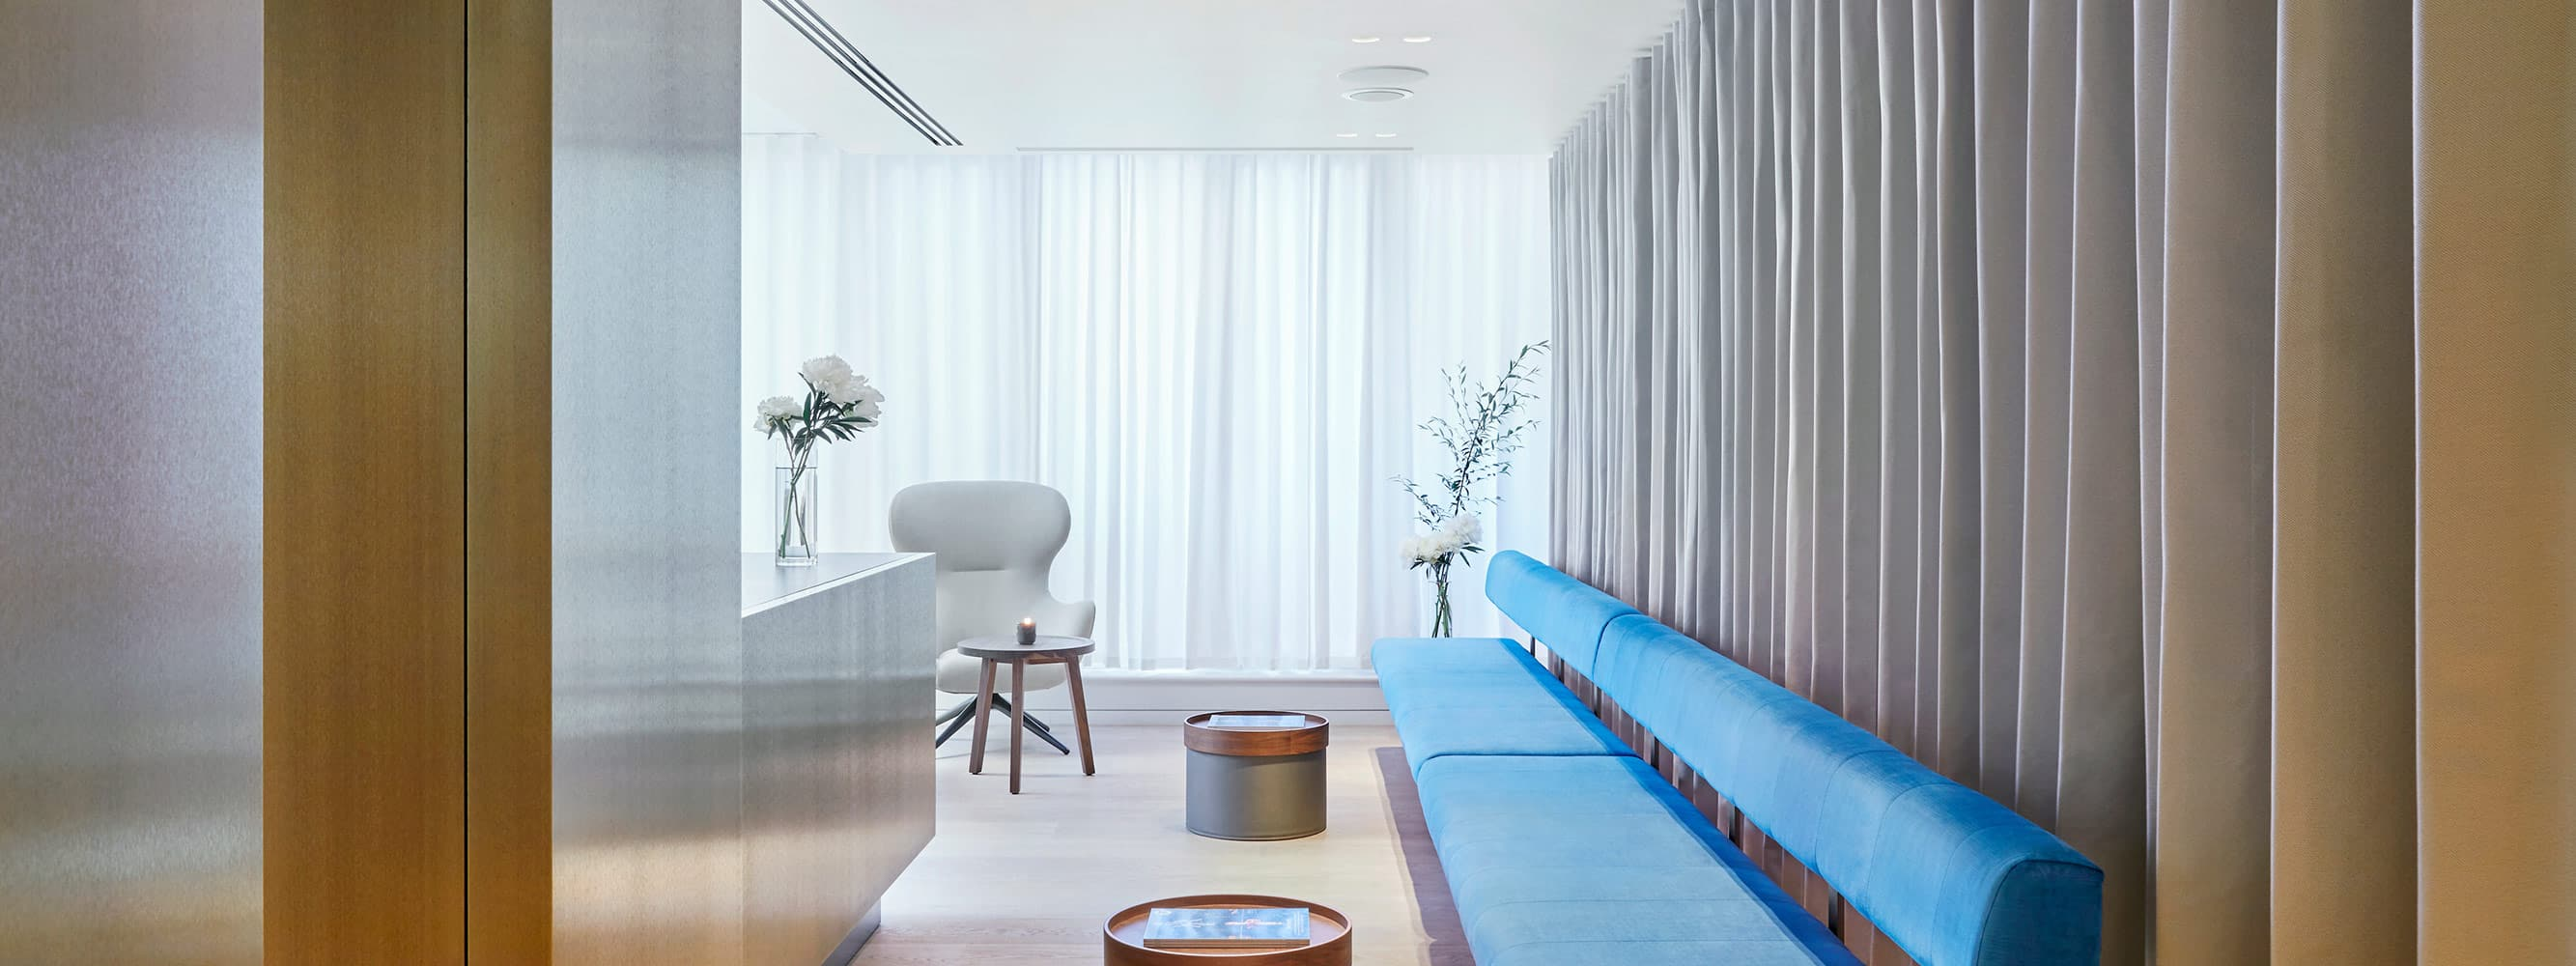 picture of the Medical Facility Entrance with blue sofa